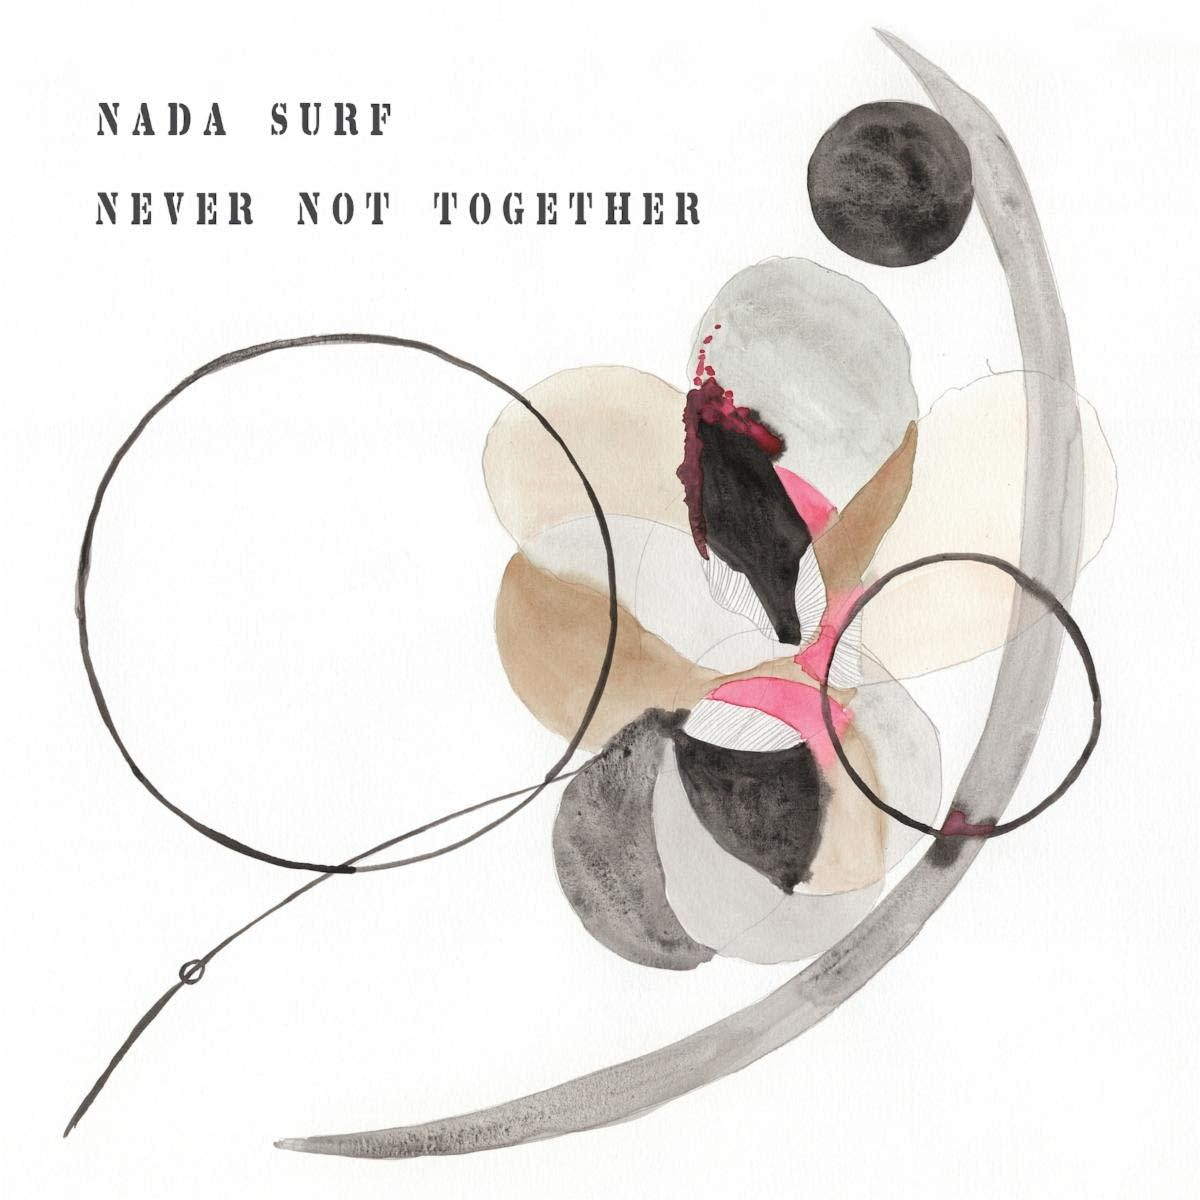 Nada Surf, 'Never Not Together'